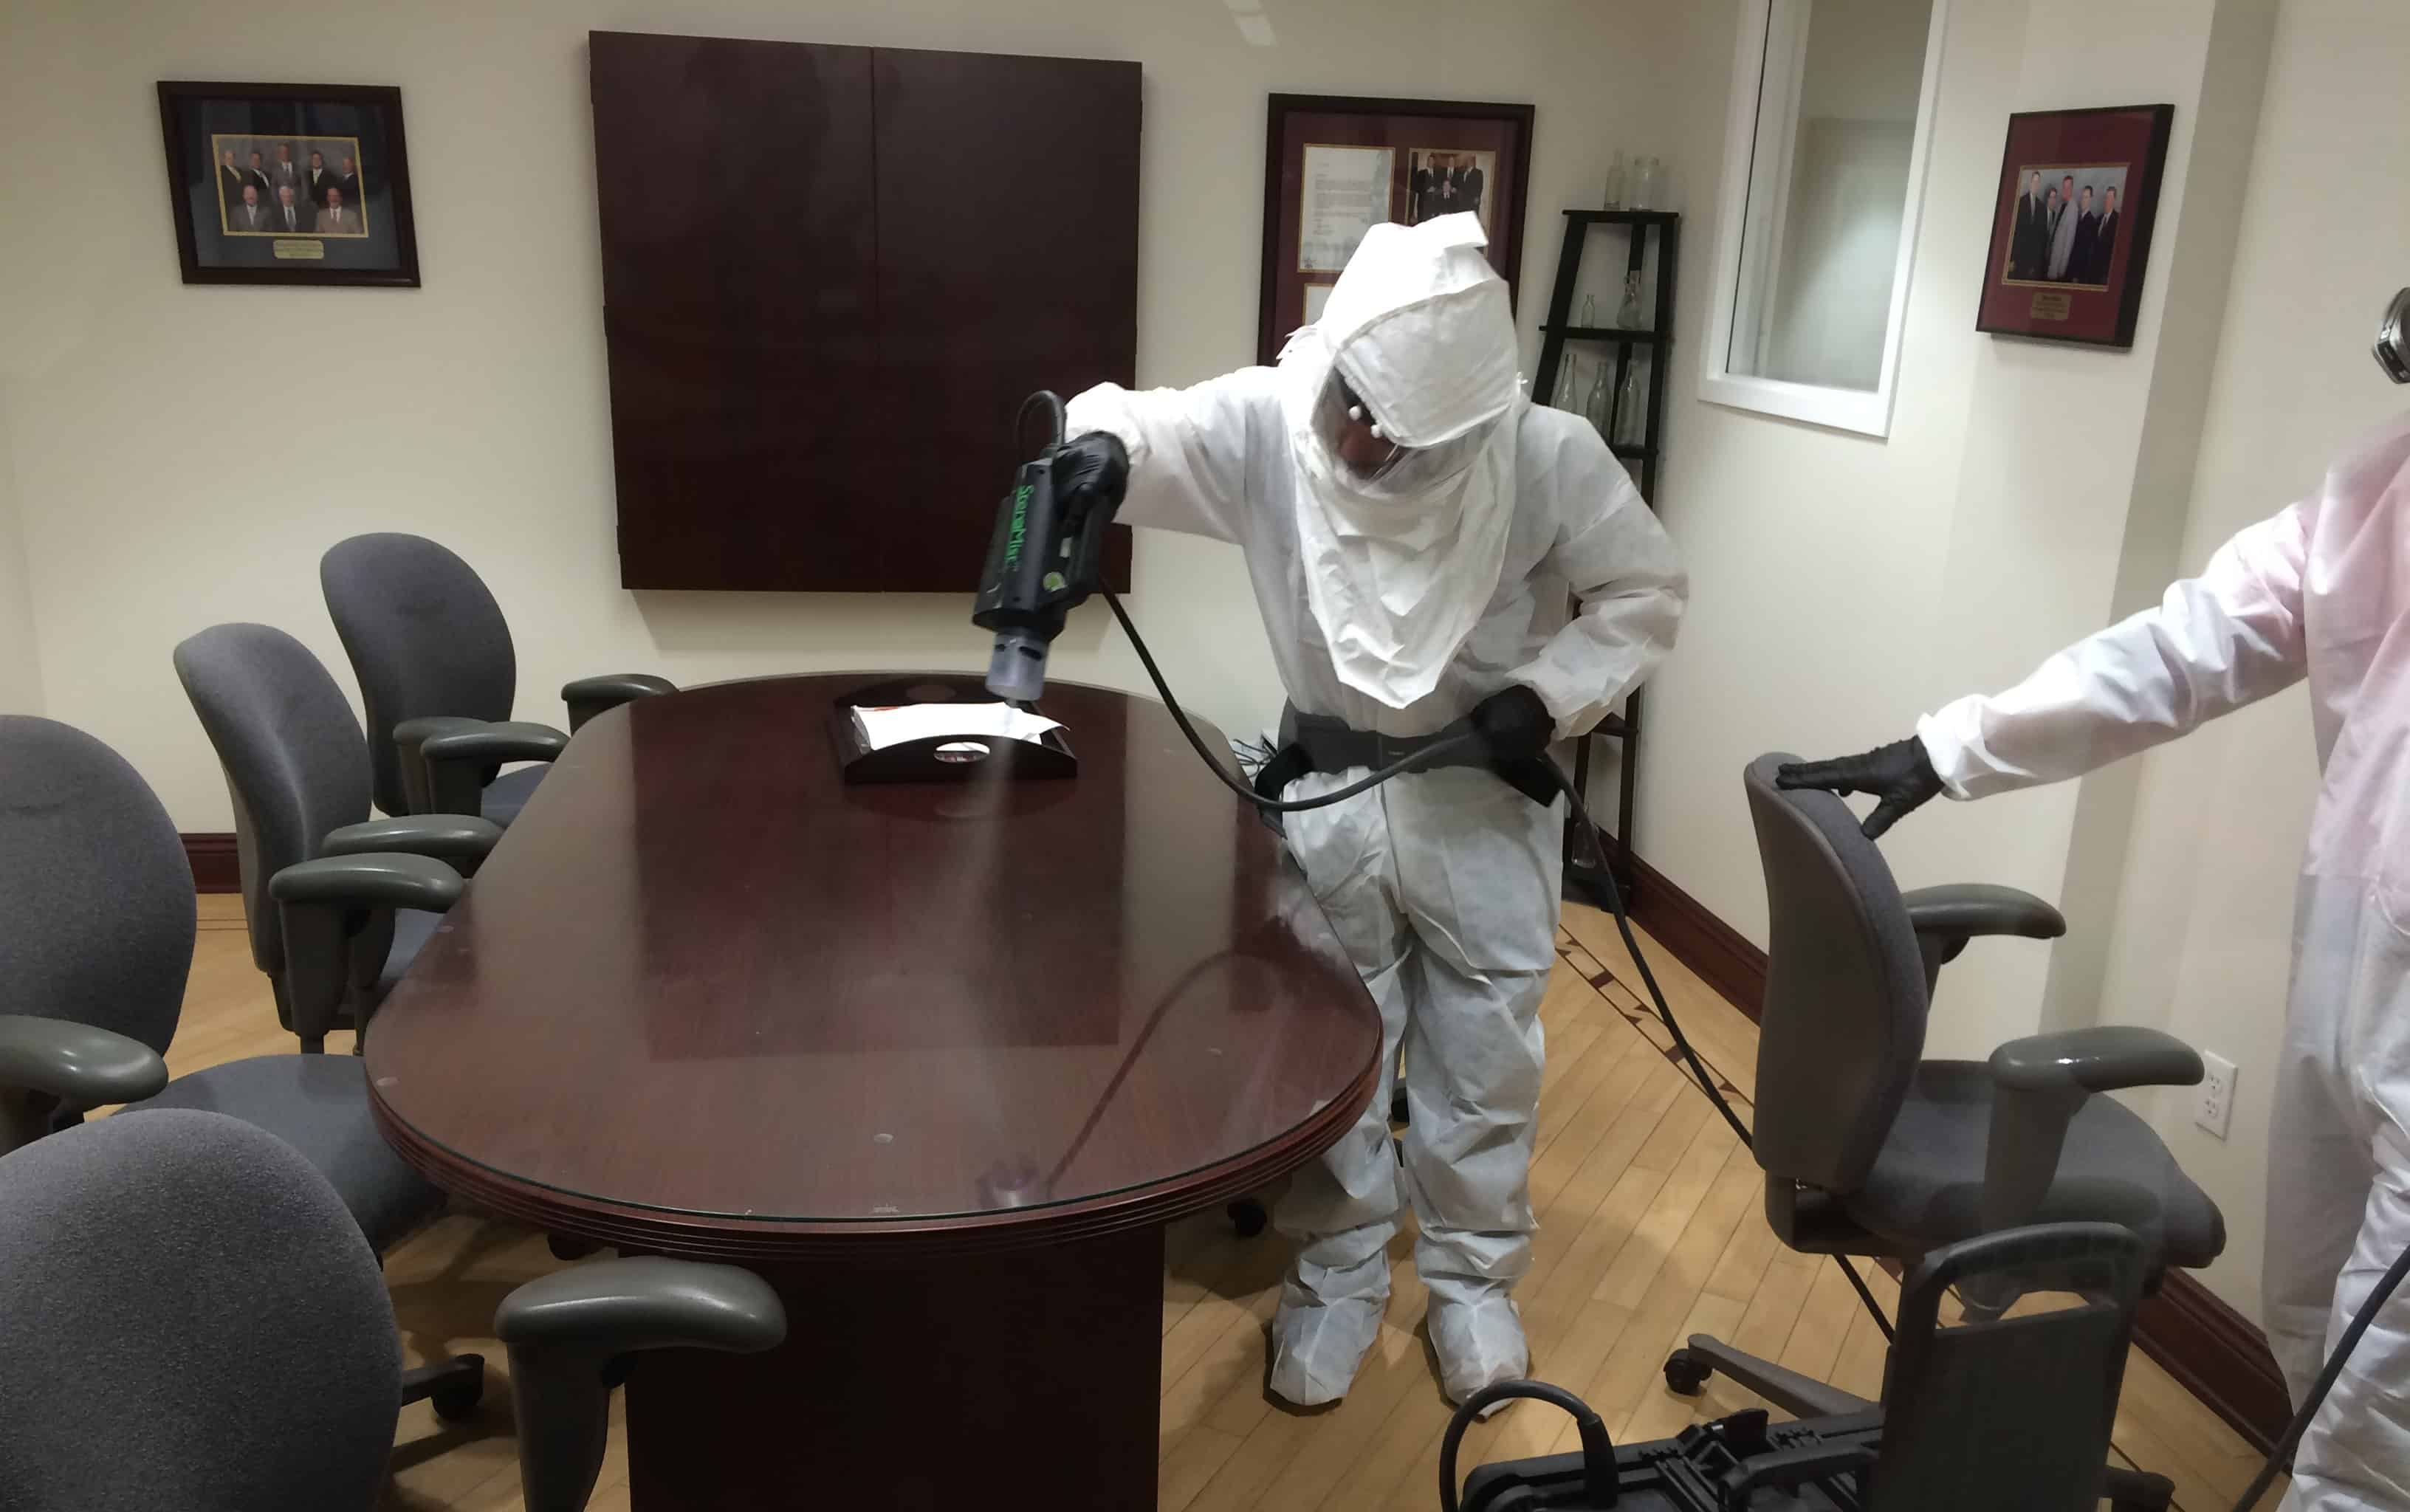 Infection Control Panhandle Panhandle Cleaning